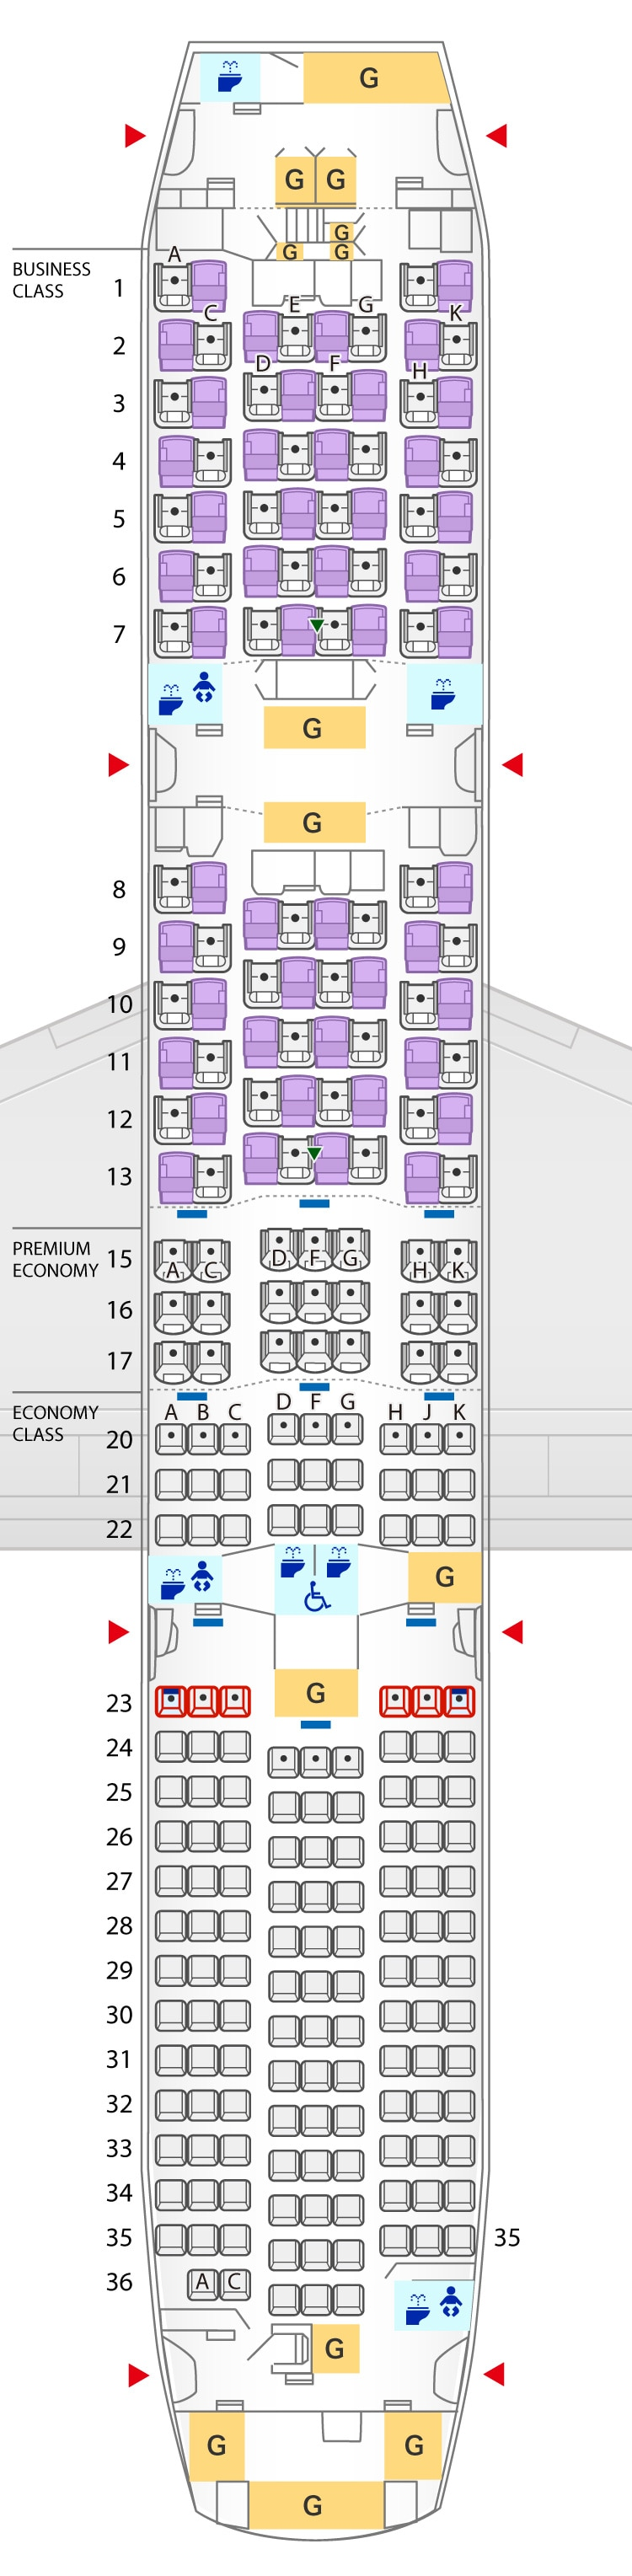 Seat Map of Boeing 787-9 (215 Seats)